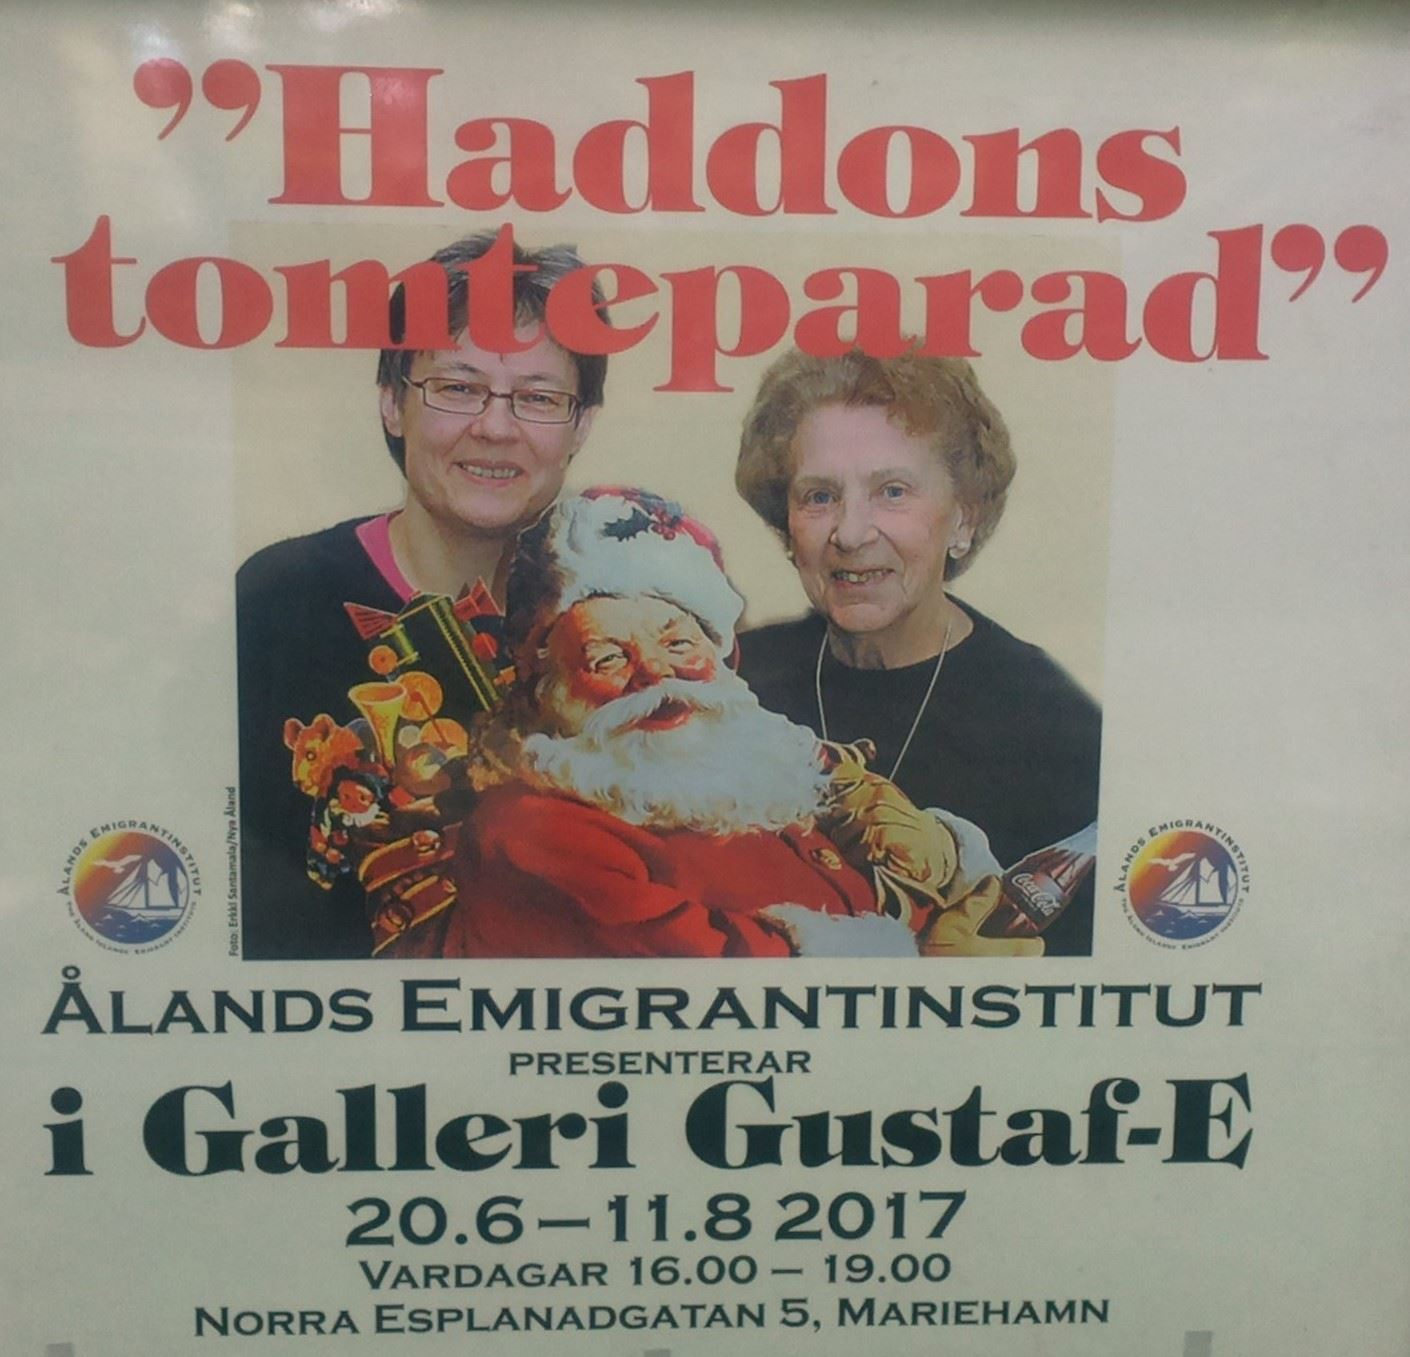 Exhibition: Haddon's Santas' Parade